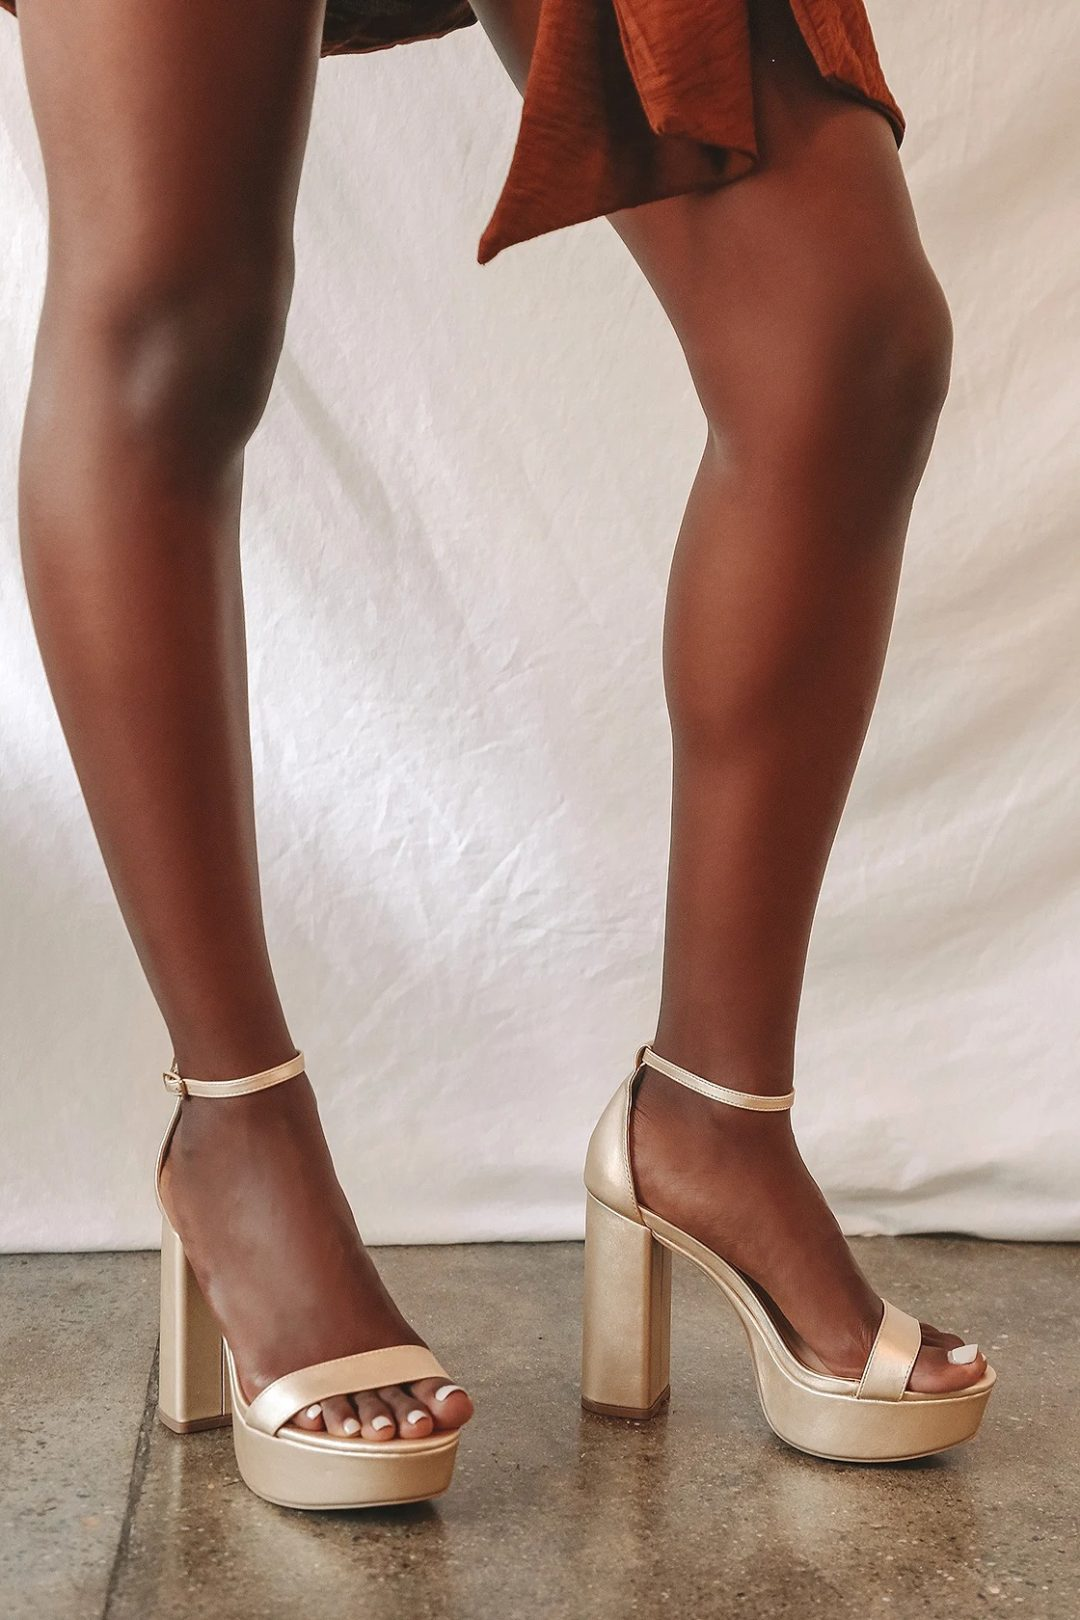 Best Shoe Colors To Wear With A Red Dress: Gold chunky heels with strap